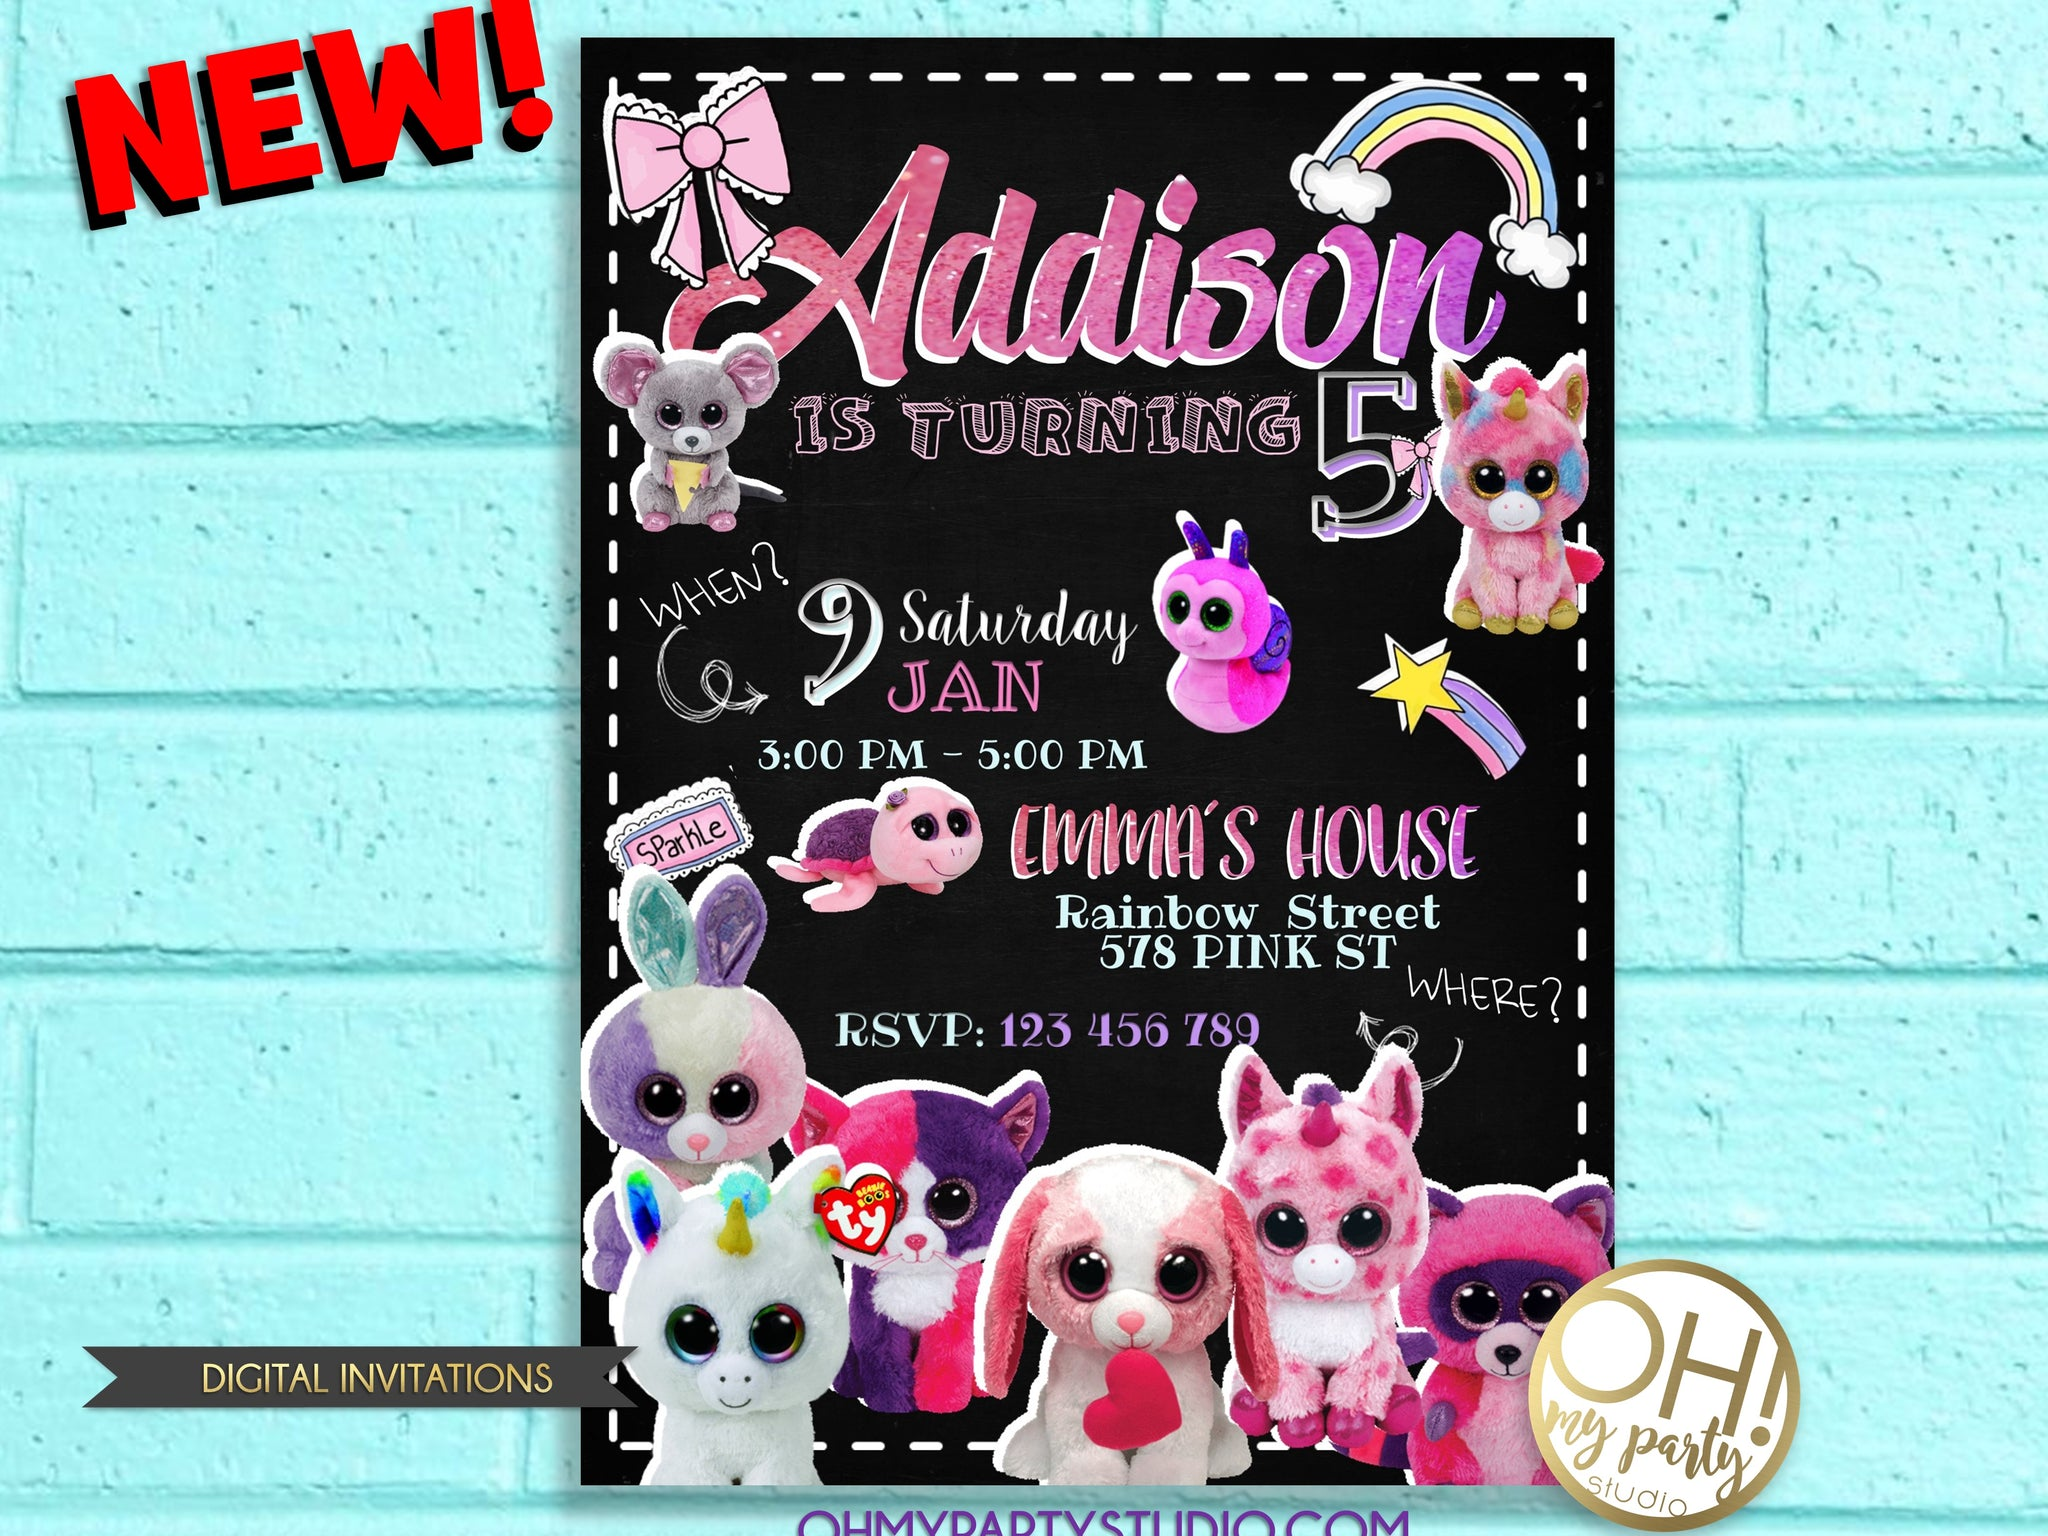 BEANIE BOO INVITATION, BEANIE BOO INVITATION DIGITAL,BEANIE BOO PARTY,BEANIE BOO PARTY PRINTABLES,BEANIE BOO INVITATIONS,BEANIE BOO BIRTHDAY PARTY INVITATION